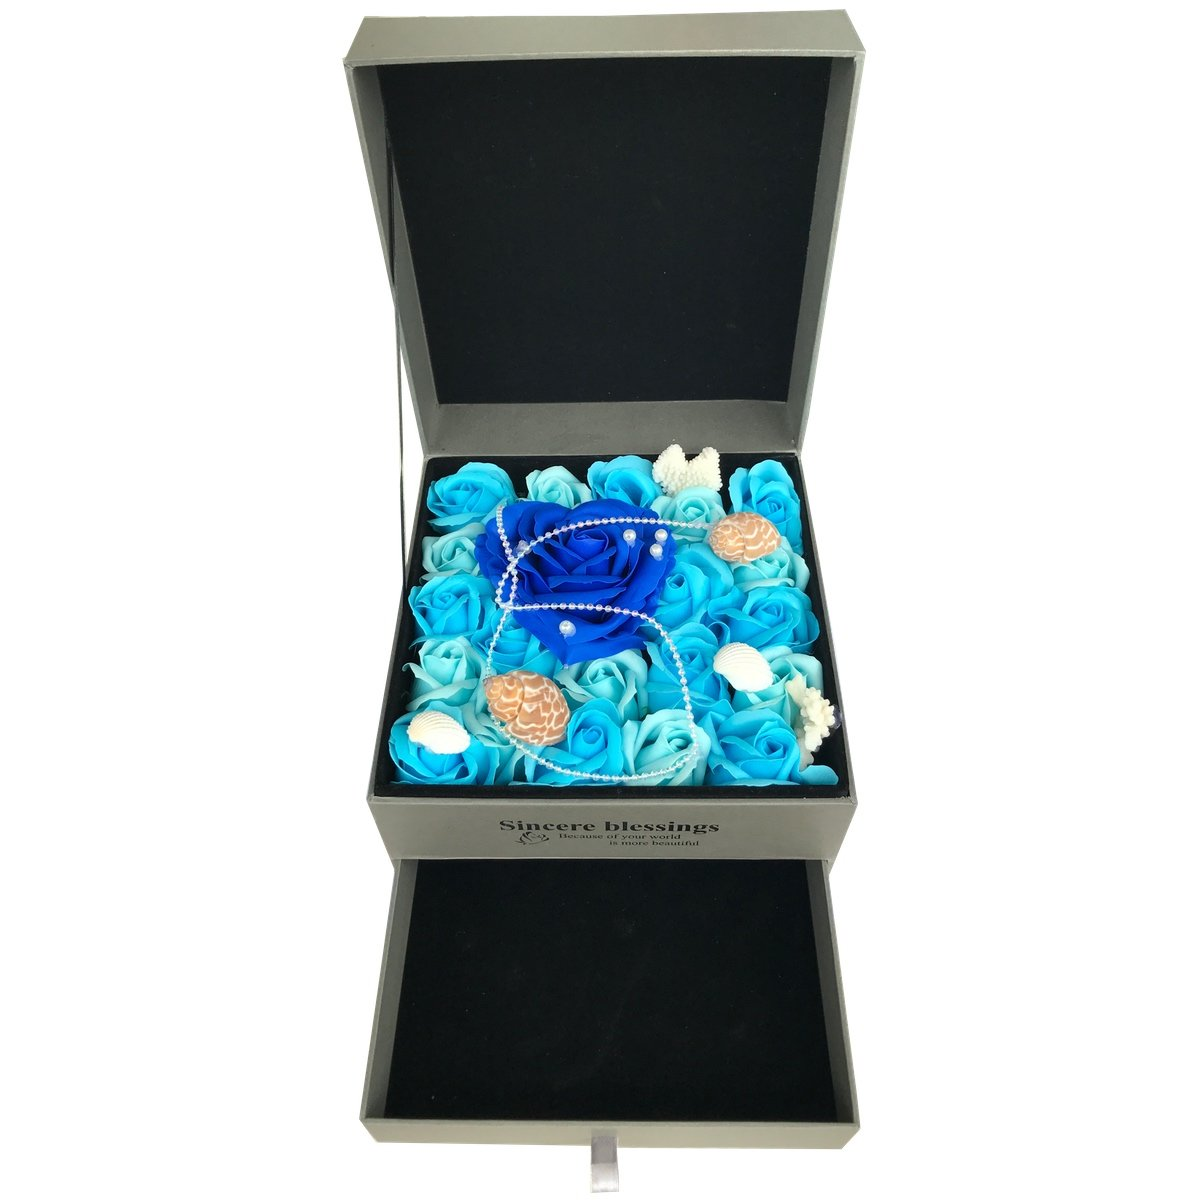 LongBang Jewelry Storage Box with Beautiful Soap Rose Flower, Great Gifts for Anniversary, Birthday, Christmas and Valentine's Day - Ocean Blue Rose